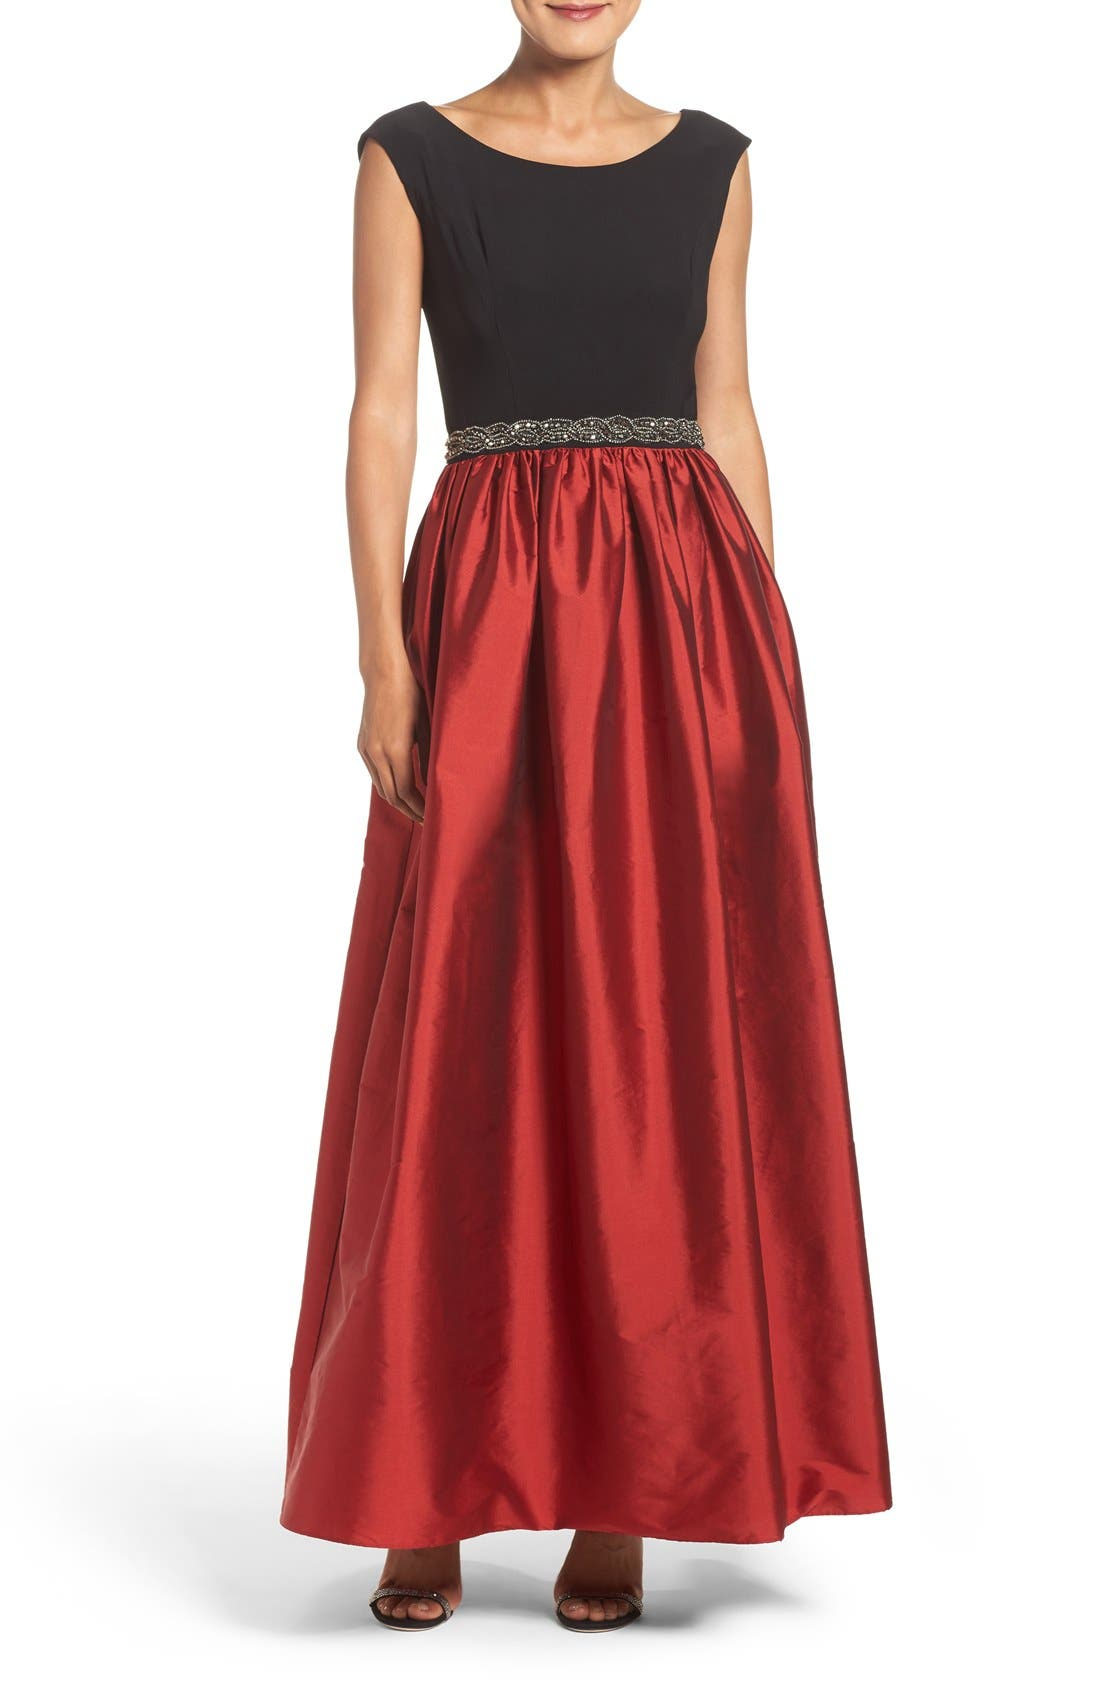 Alternate Image 1 Selected - Alex Evenings Beaded Woven Fit & Flare Gown